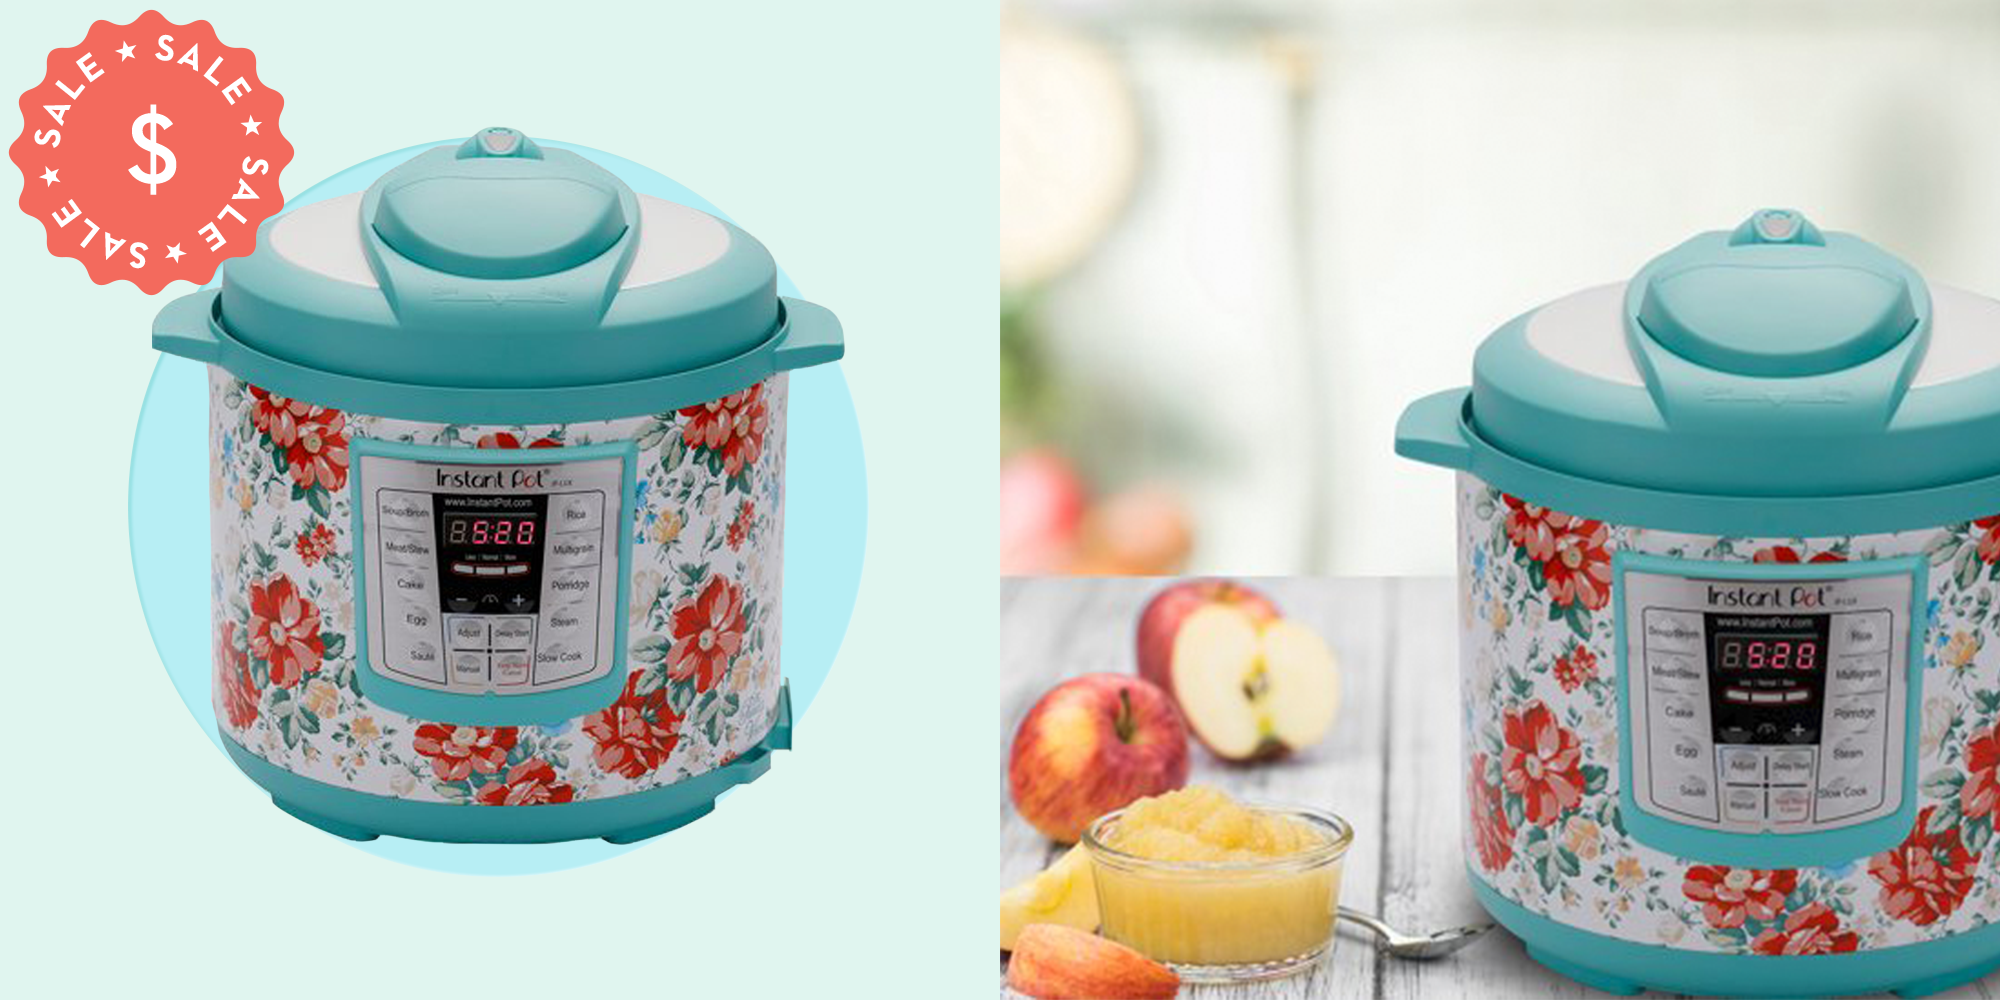 The Pioneer Woman Instant Pot Is 40% Off Right Now at Walmart